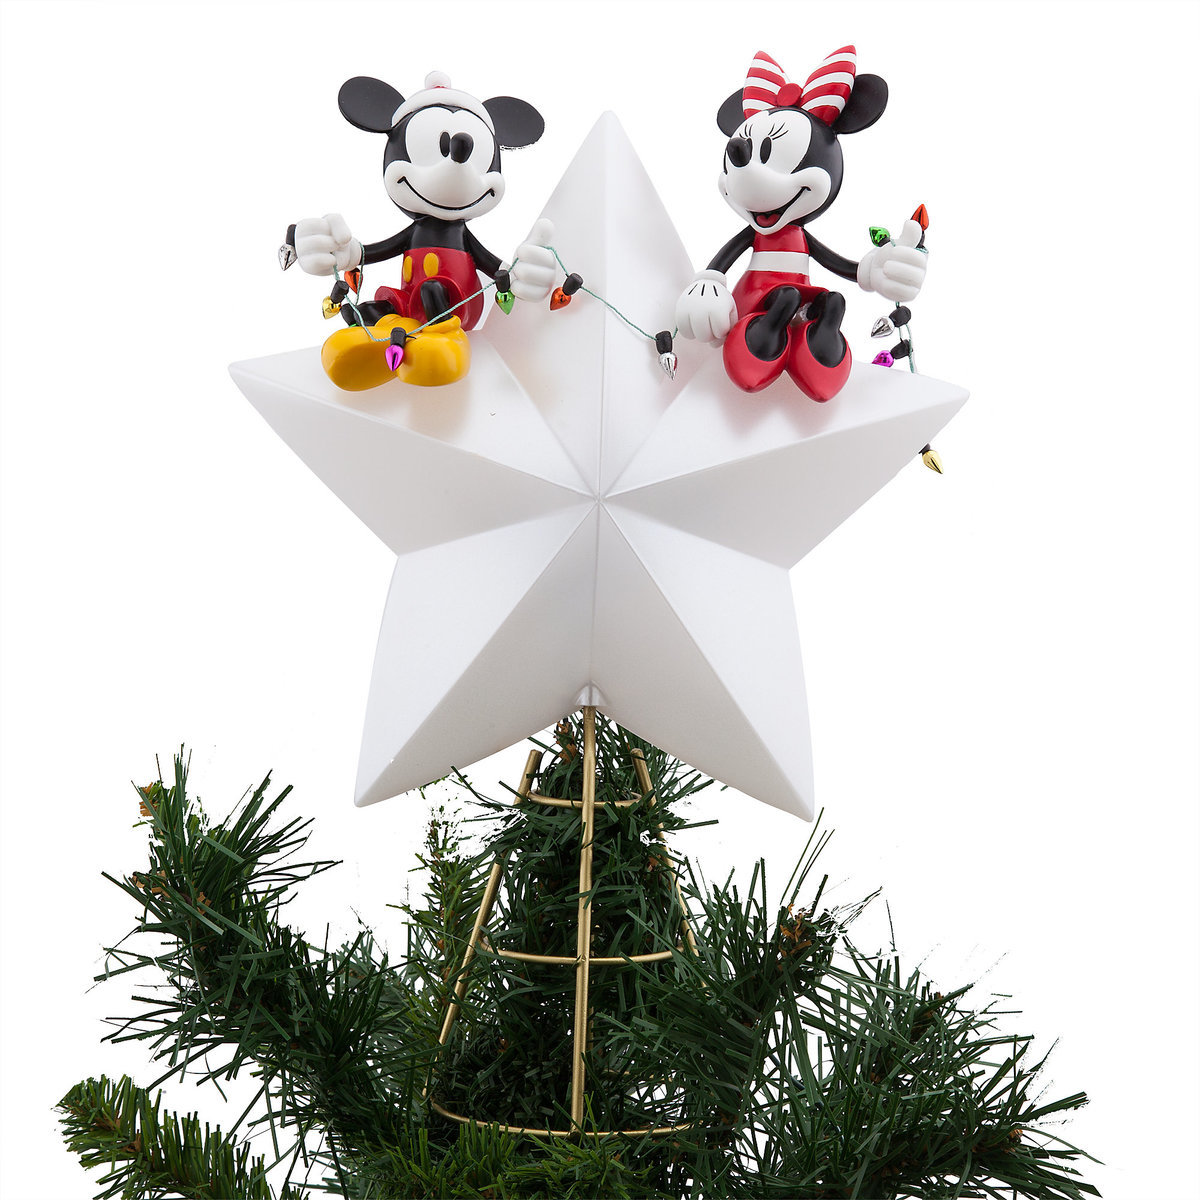 d8a89336d12 Product Image of Mickey and Minnie Mouse Light-Up Holiday Tree Topper   1